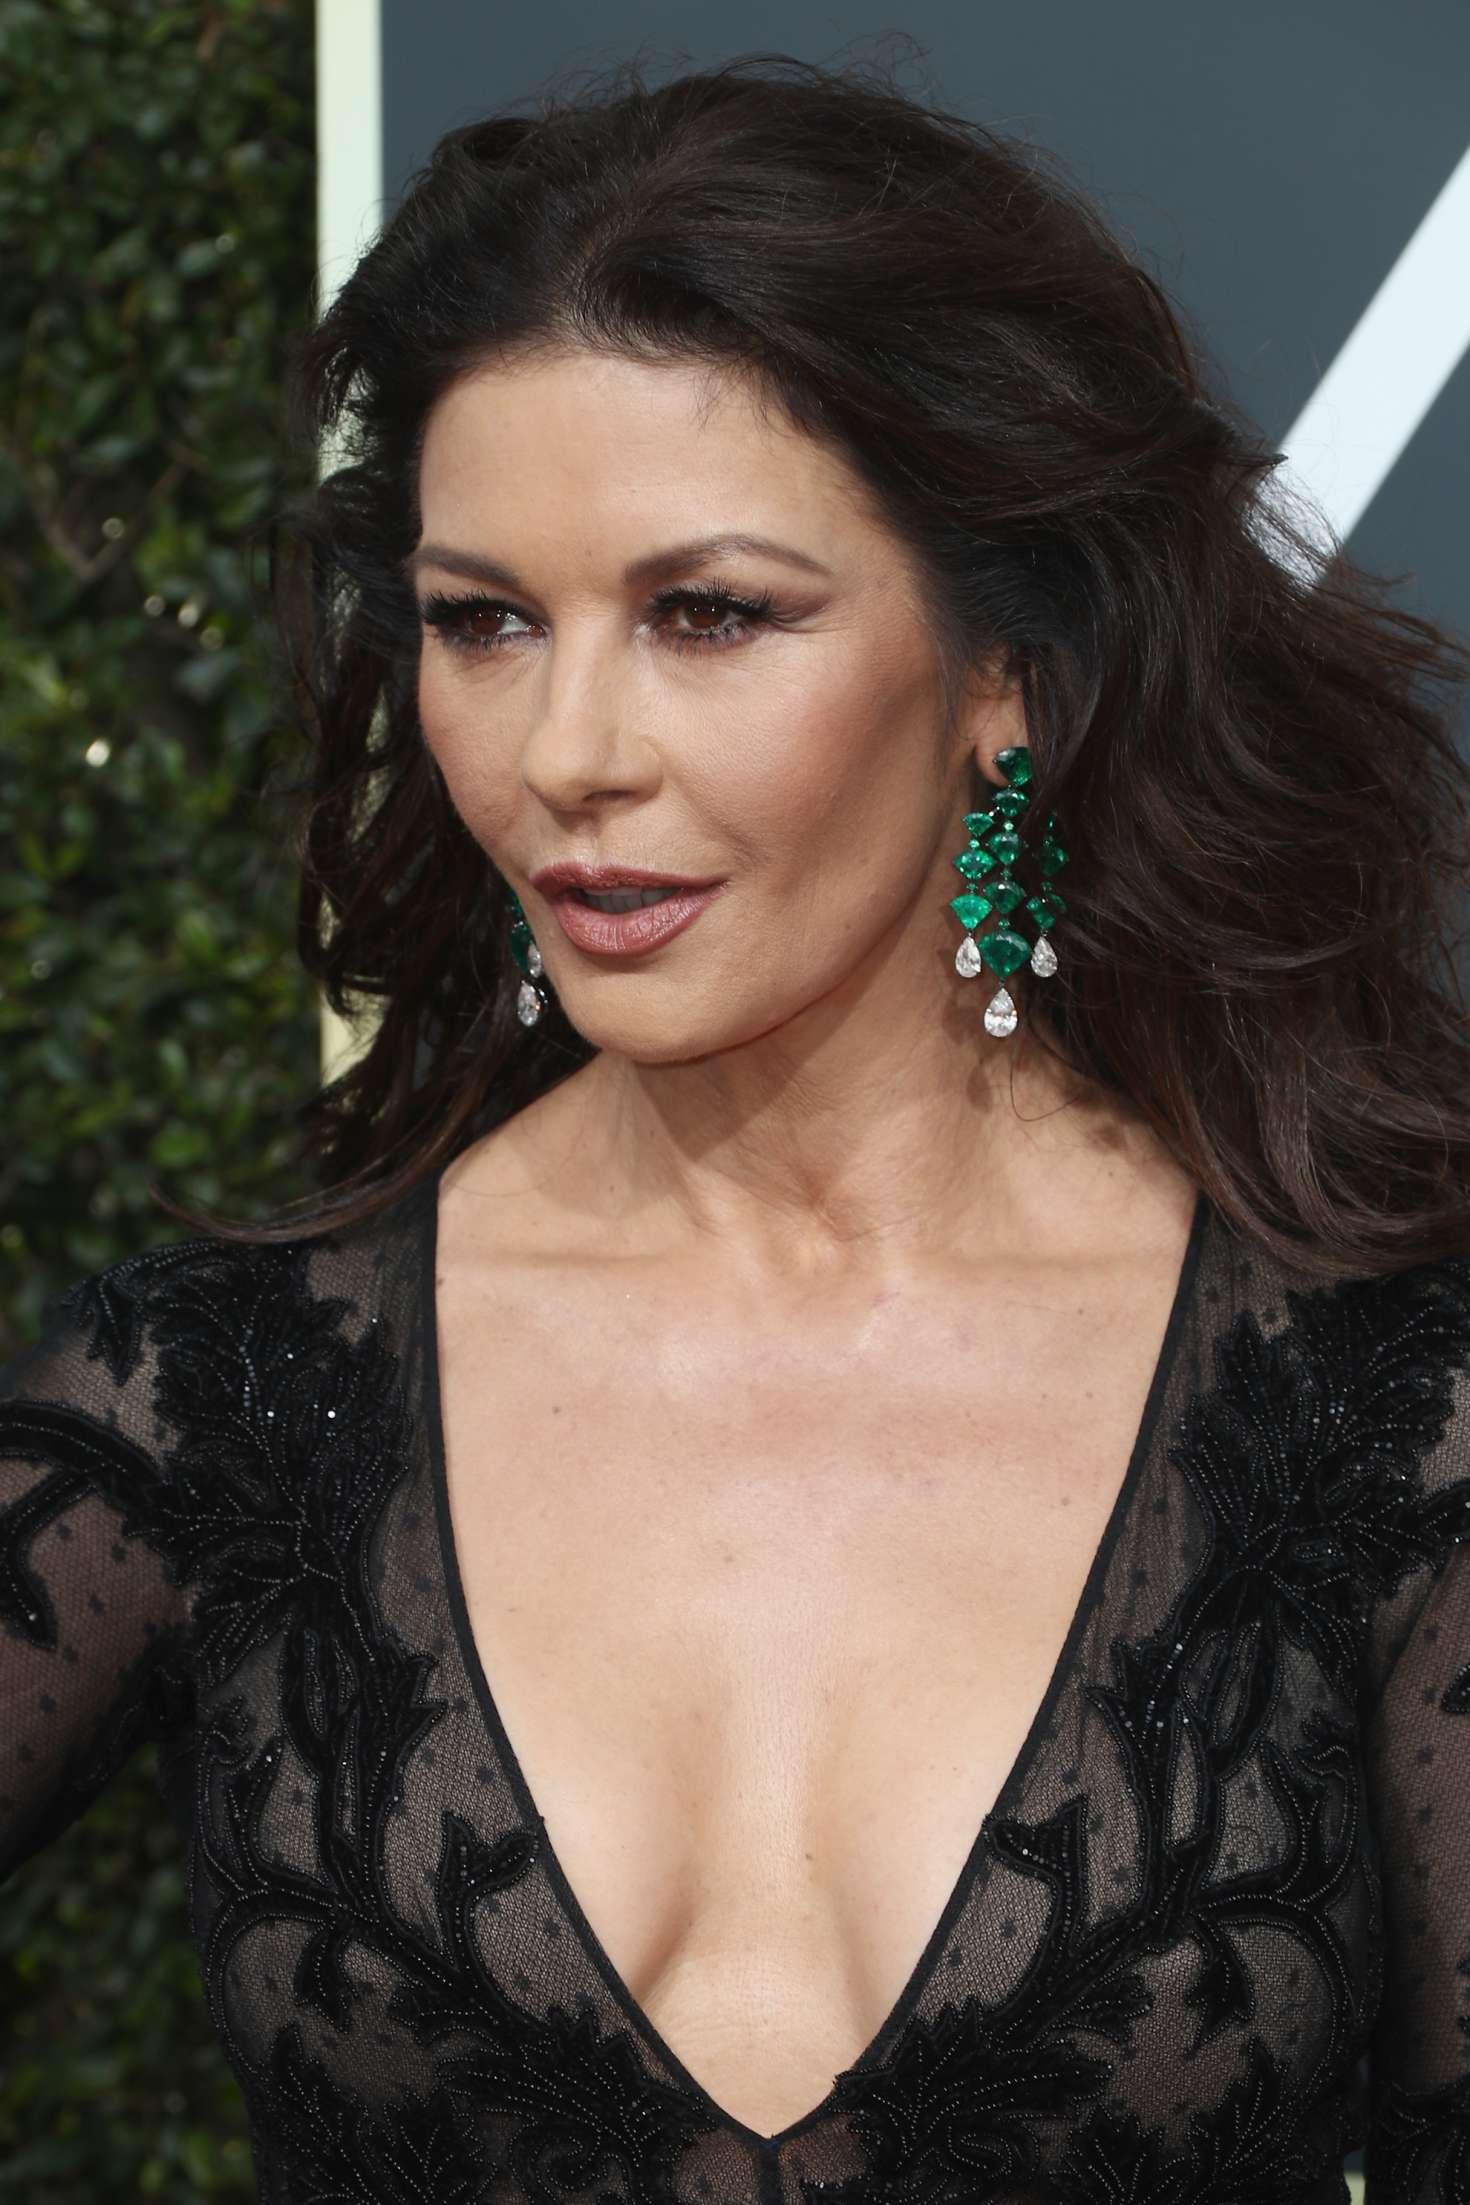 Catherine Zeta-Jones: 2018 Golden Globe Awards -03 - GotCeleb Catherine Zeta Jones